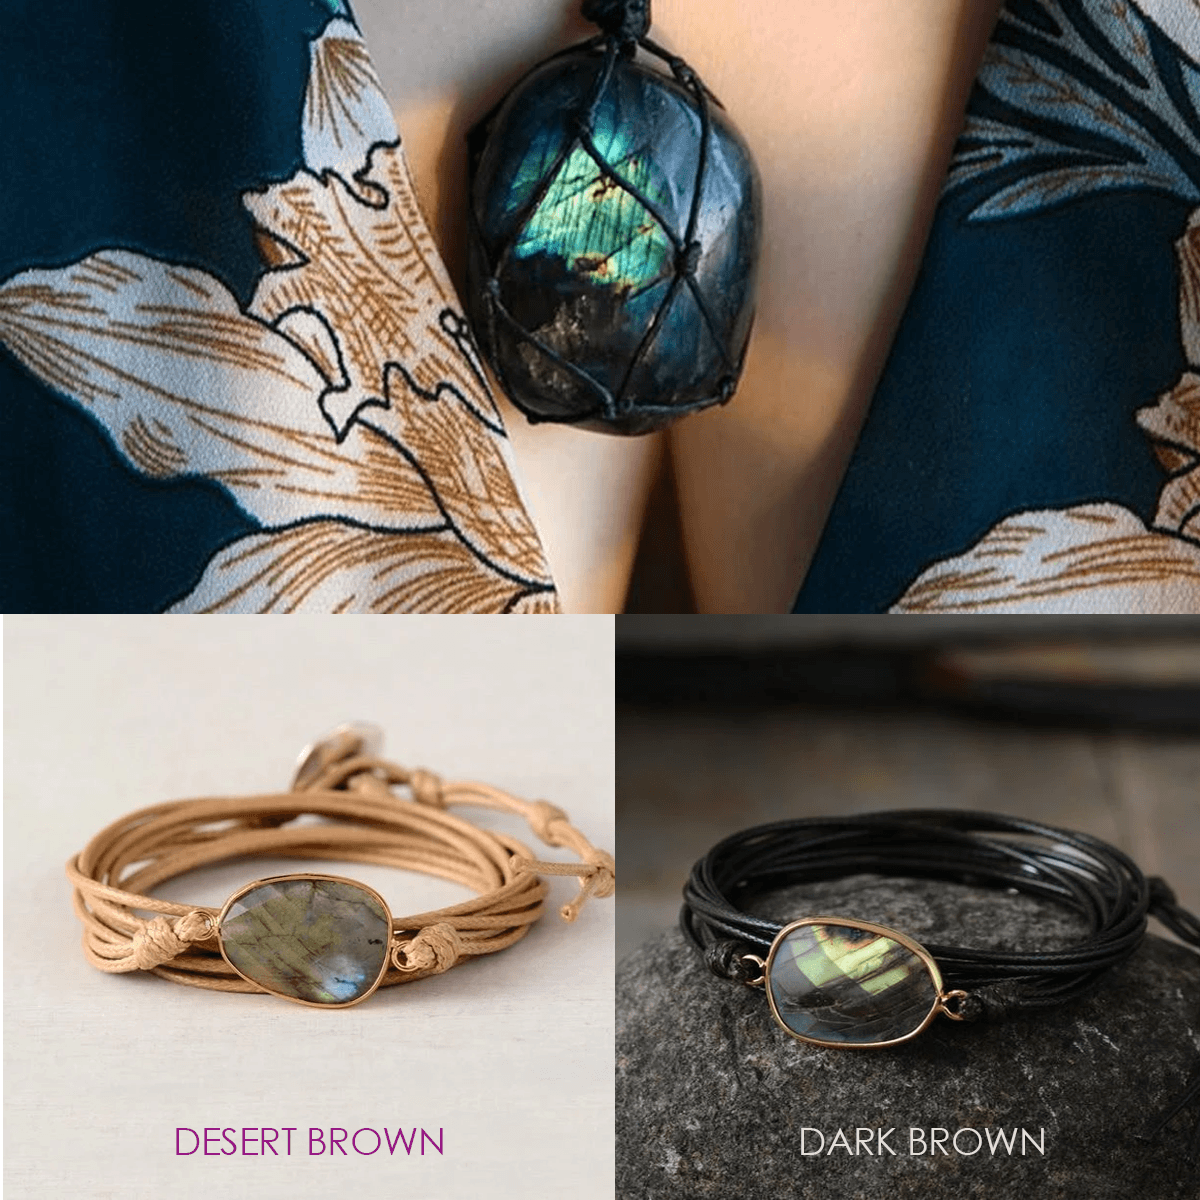 Dragon's Eye Labradorite Necklace + 1 Healing Labradorite Wrap Bracelet